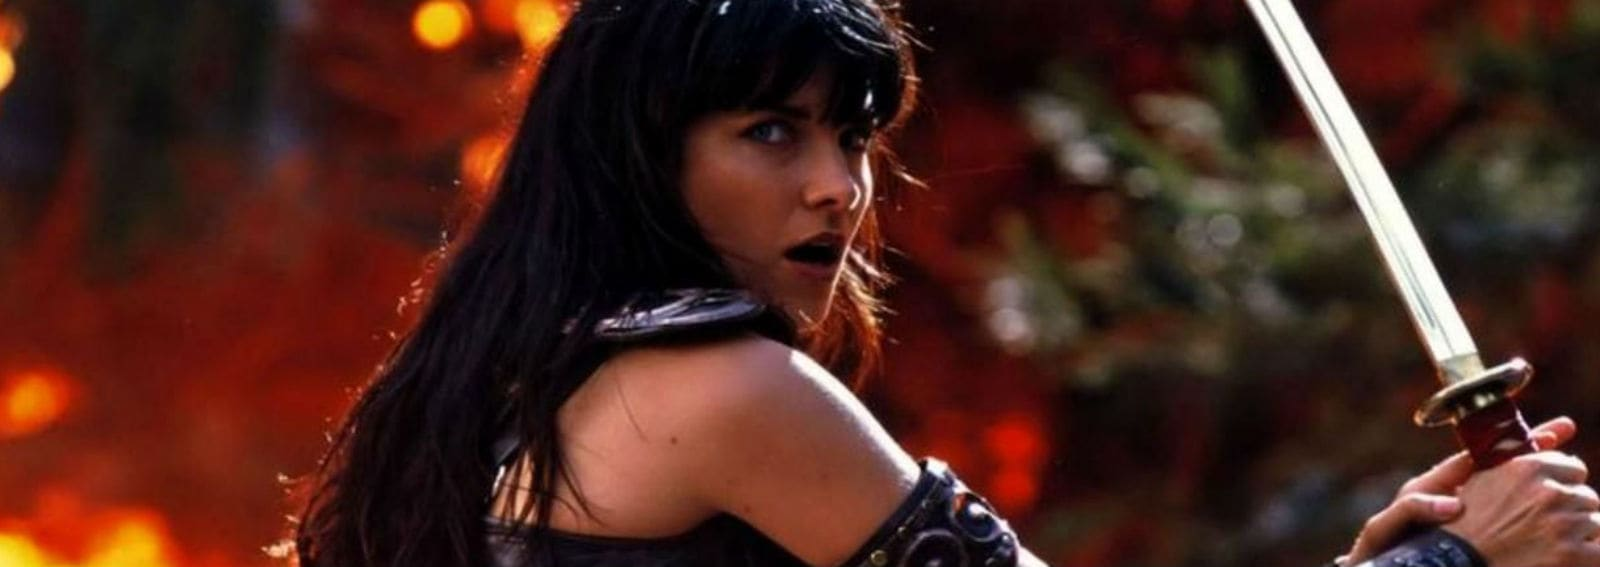 Xena Hero Big